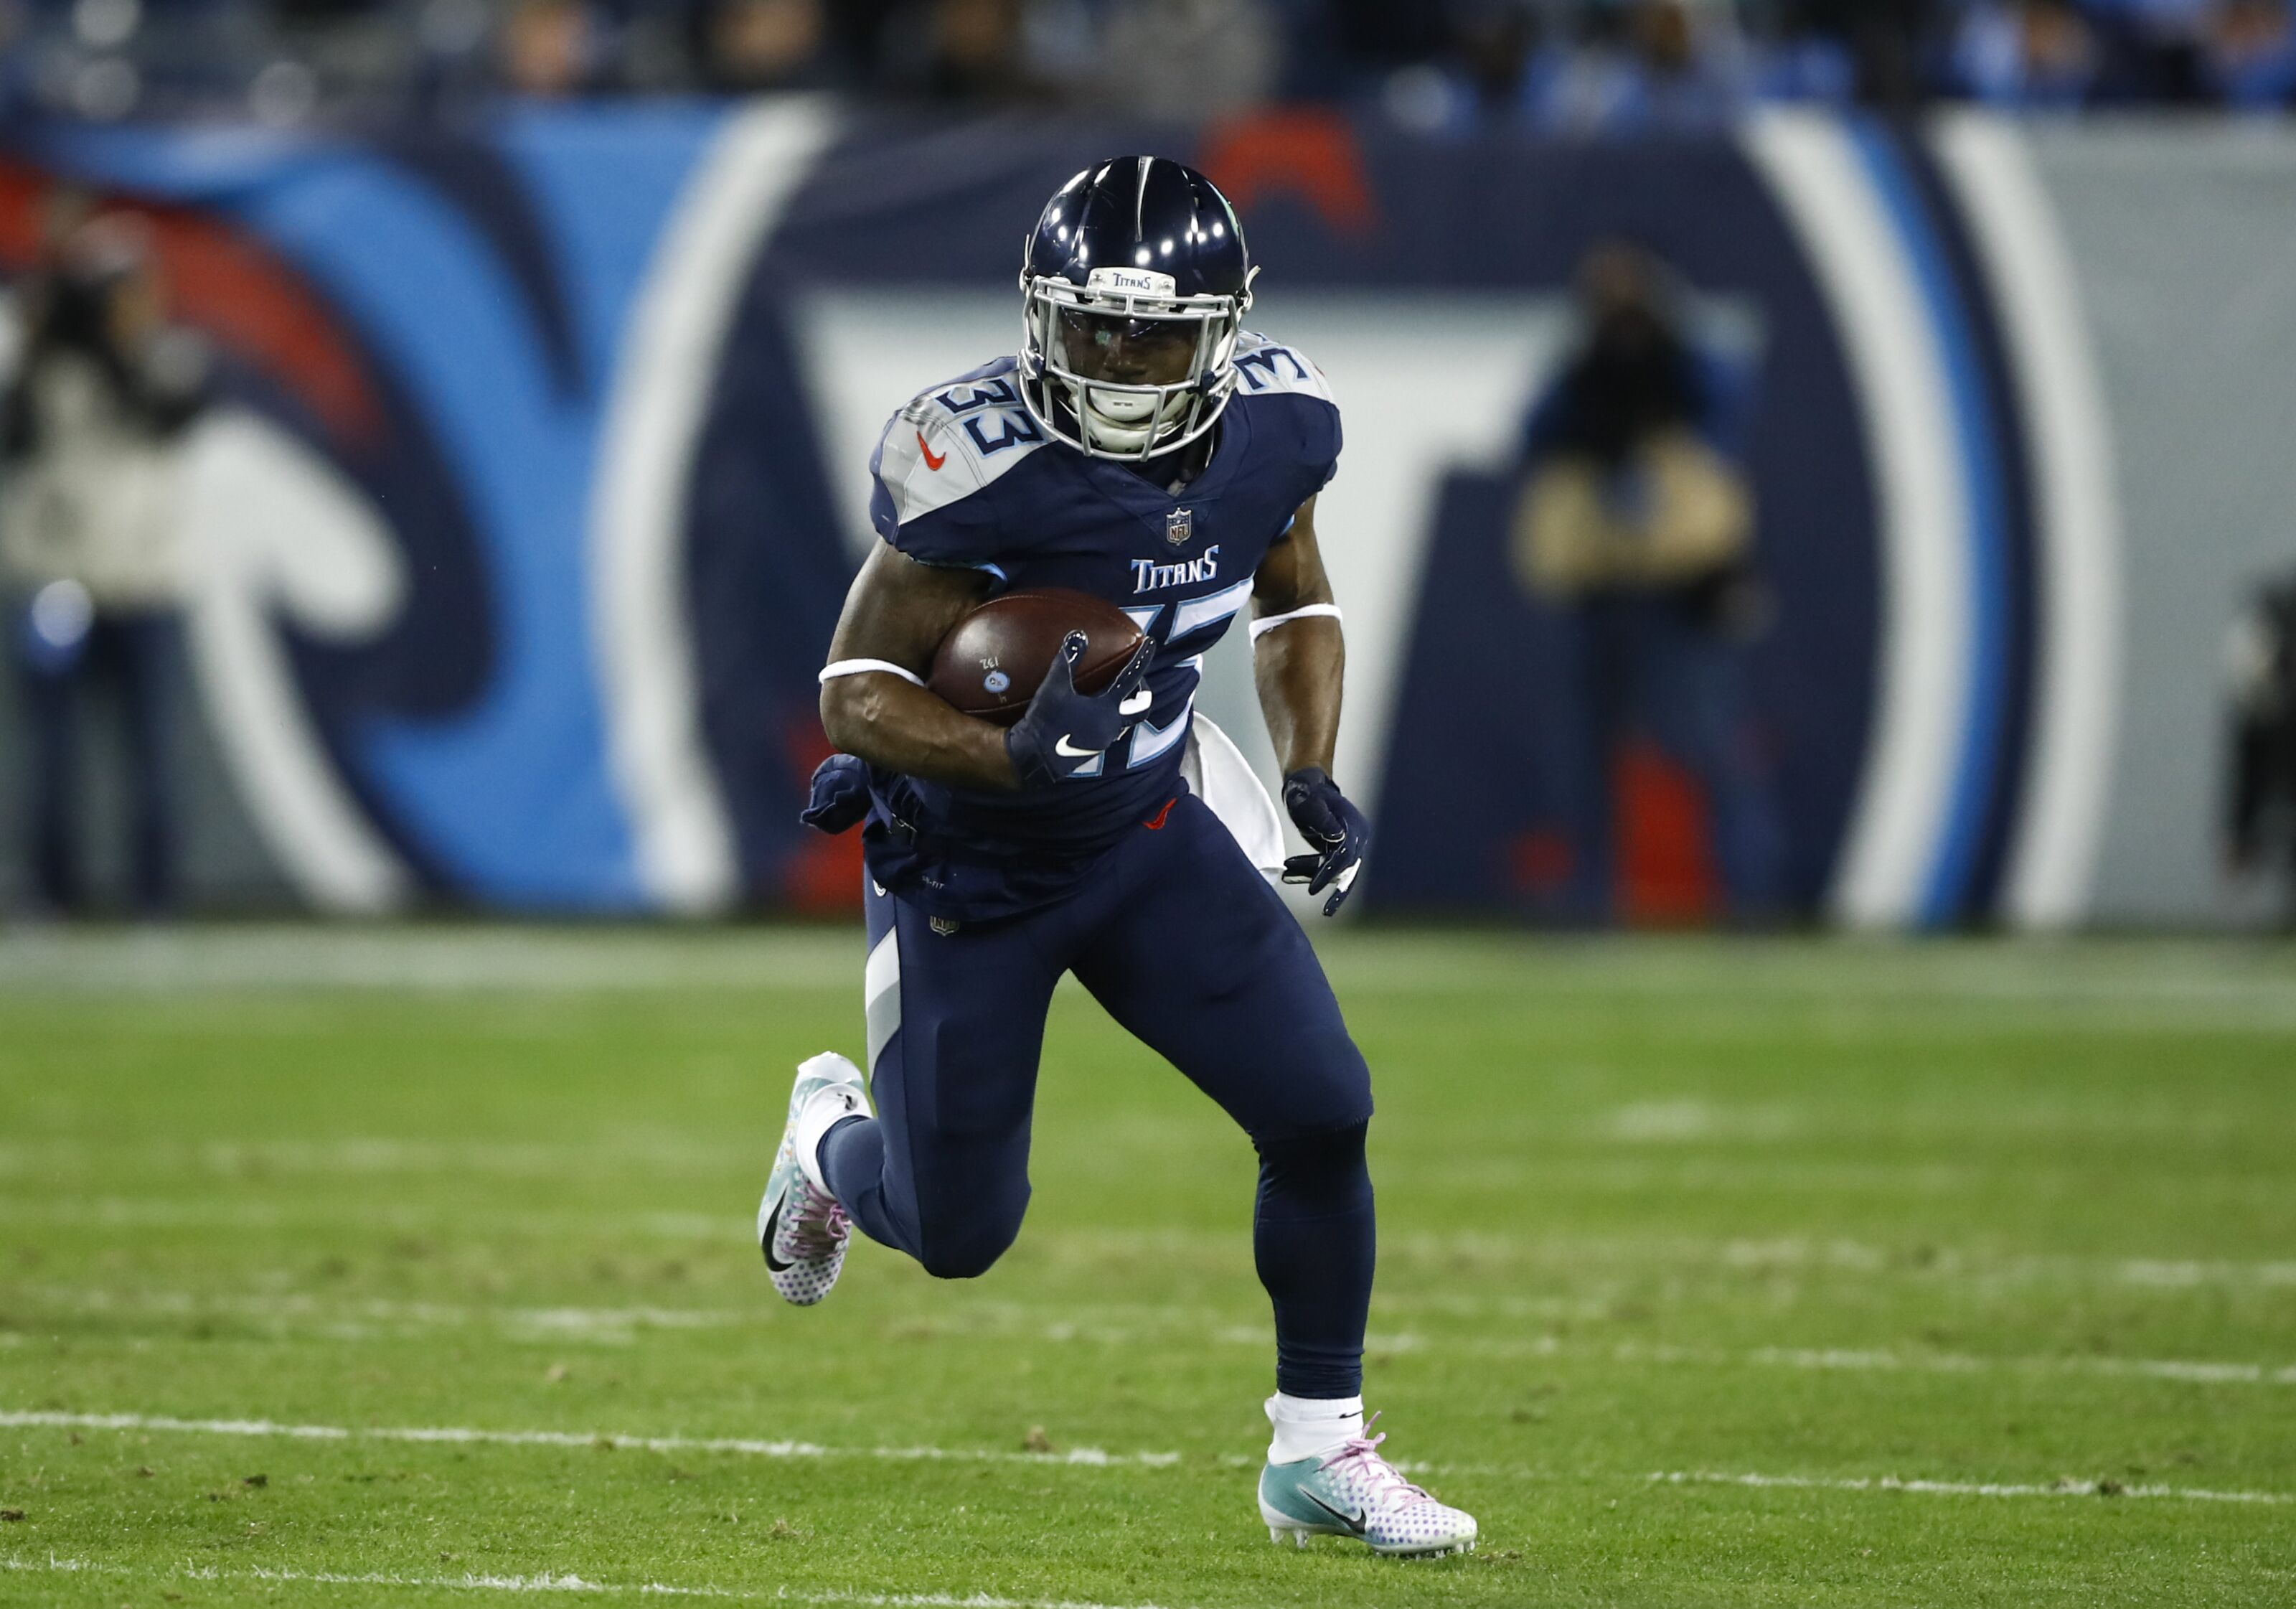 What Tennessee Titans RB additions could mean for Dion Lewis